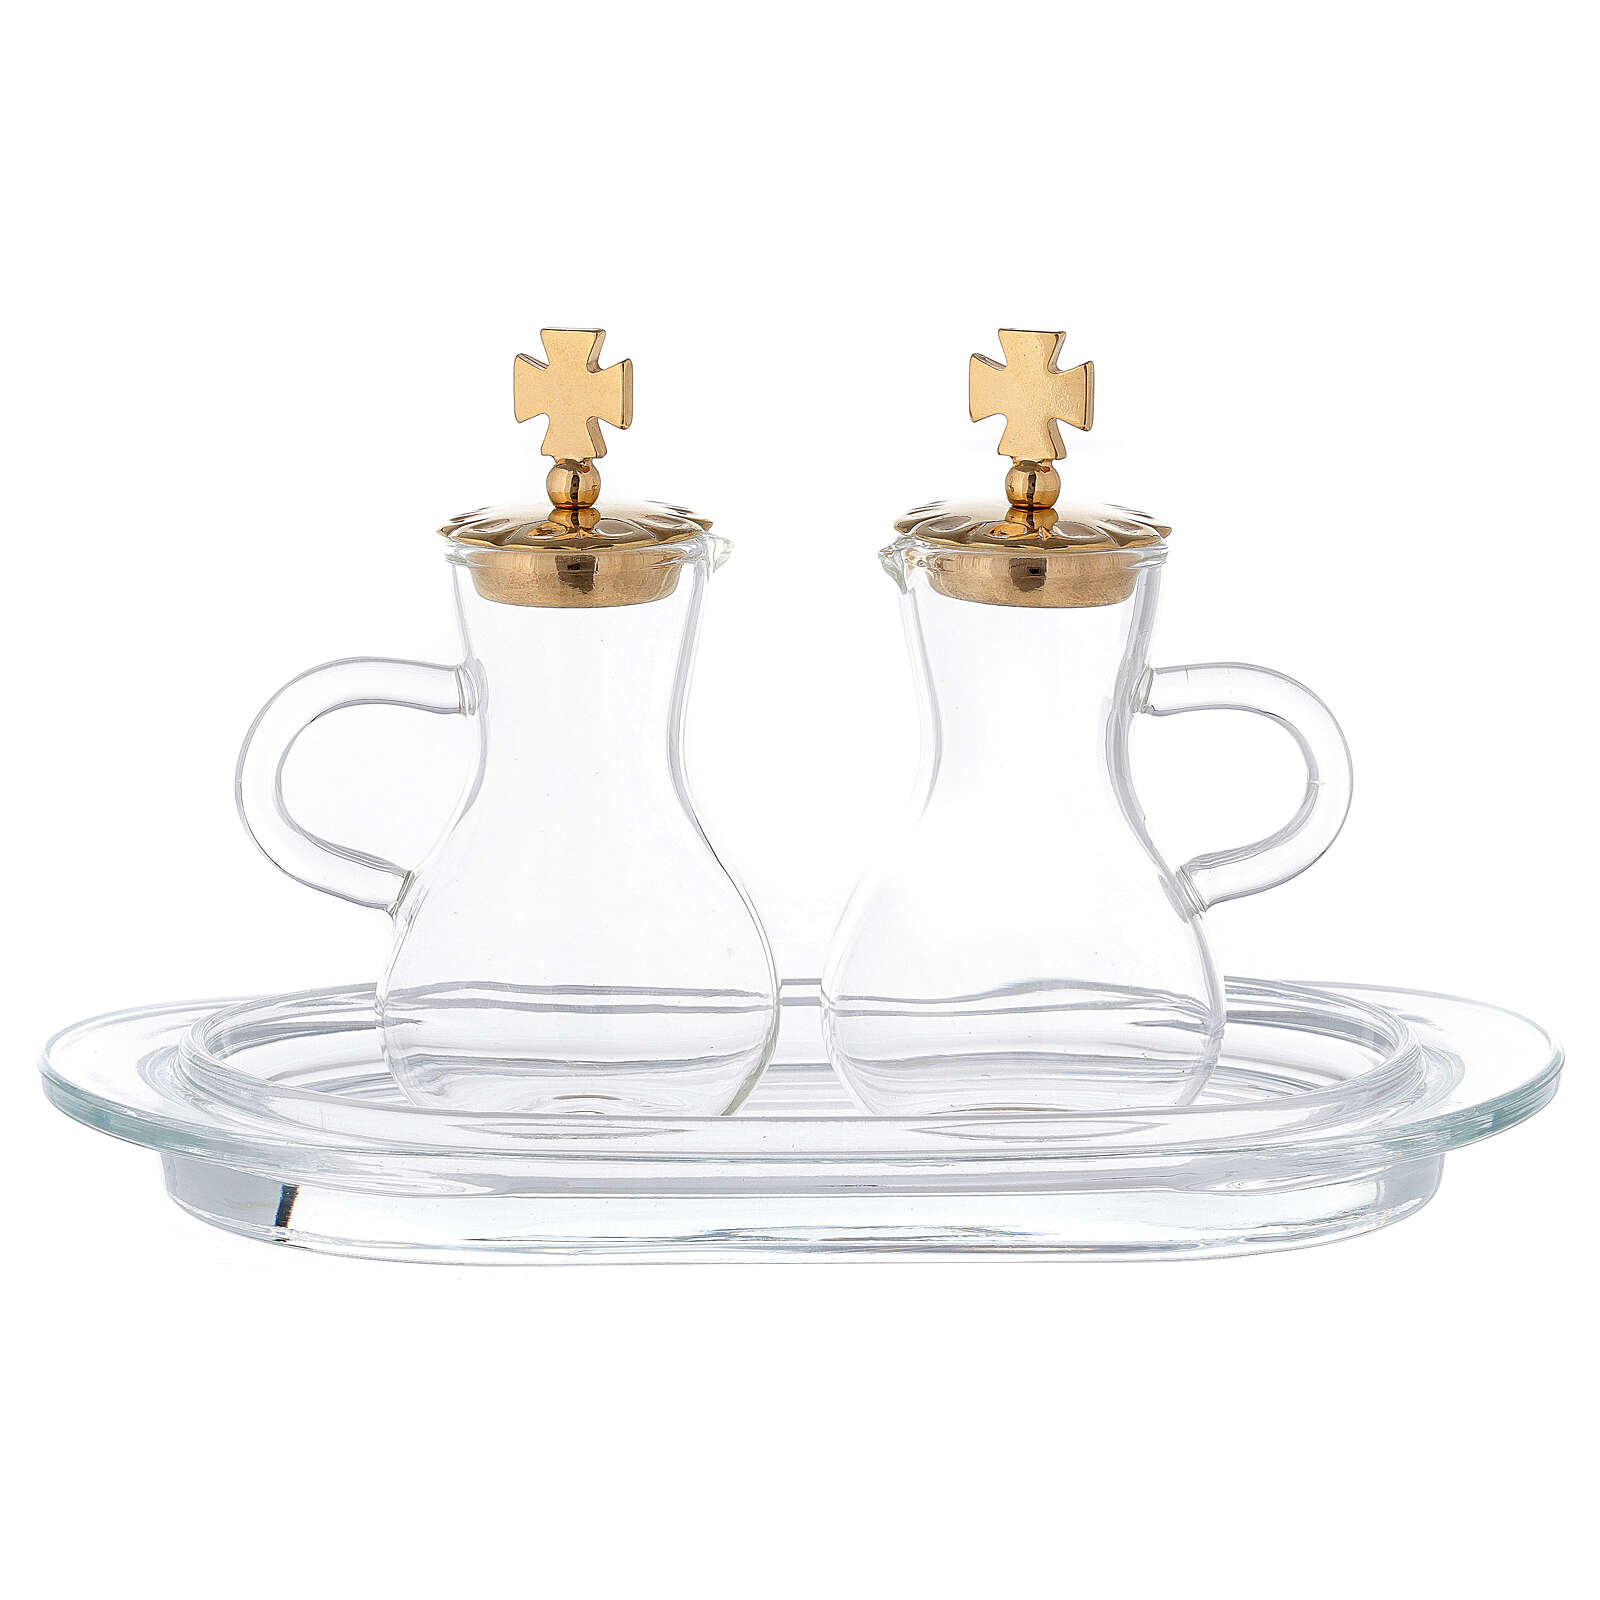 Parma cruets gold plated brass and glass 4